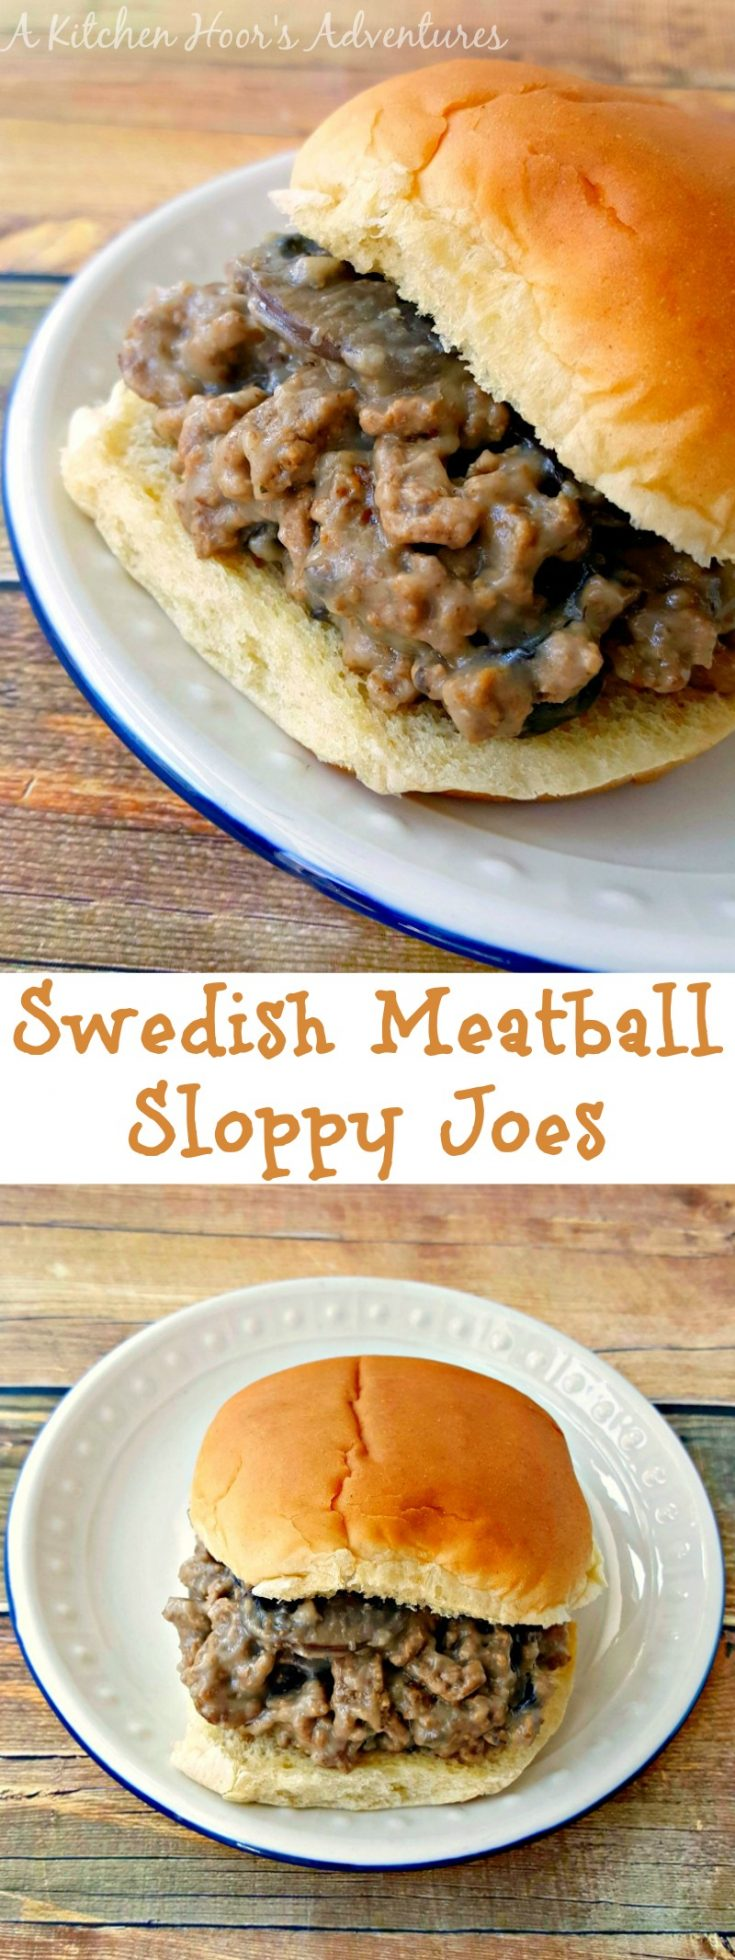 I deconstructed our favorite Swedish meatball recipe and turned them into delicious Swedish Meatball Sloppy Joes.